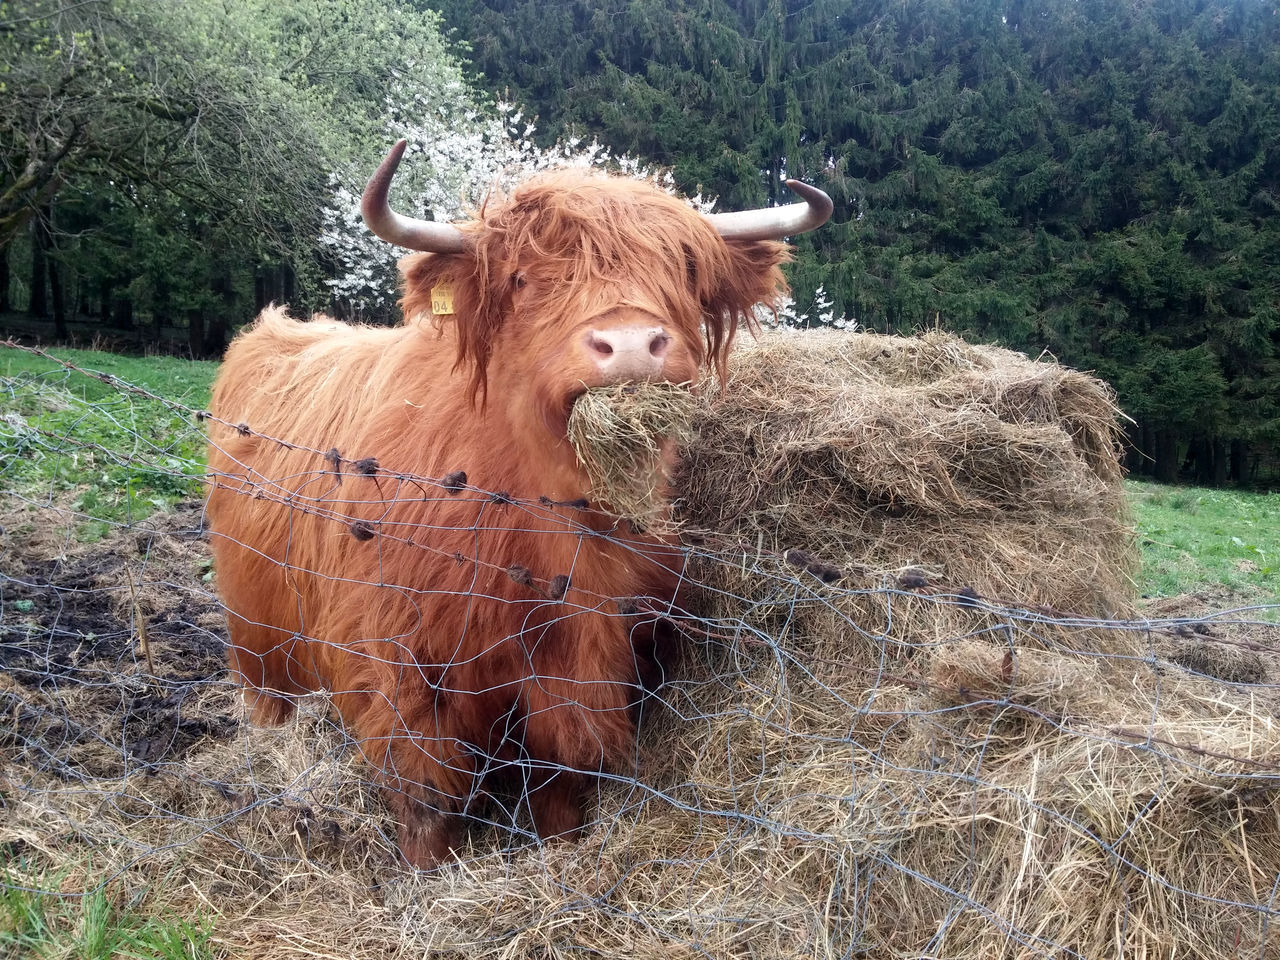 Animal Themes Cattle Cow Day Domestic Animals Domestic Cattle Field Grass Highland Cattle Highland Cattle Kyloe Livestock Mammal Nature No People Outdoors Schottisches Hochlandrind Tree